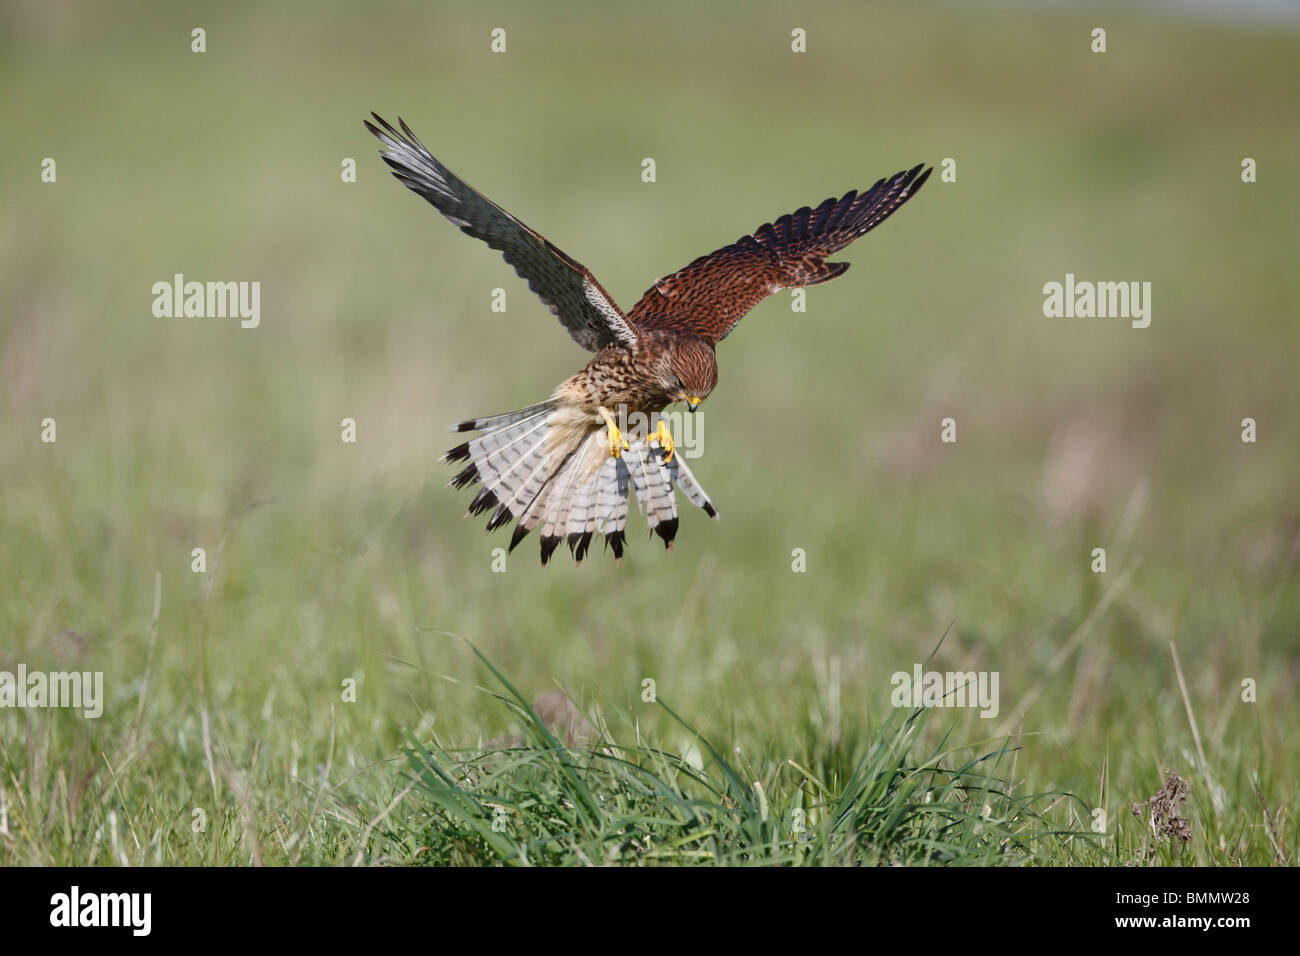 Kestrel (Falco tinnunculus) hunting over grassland - Stock Image